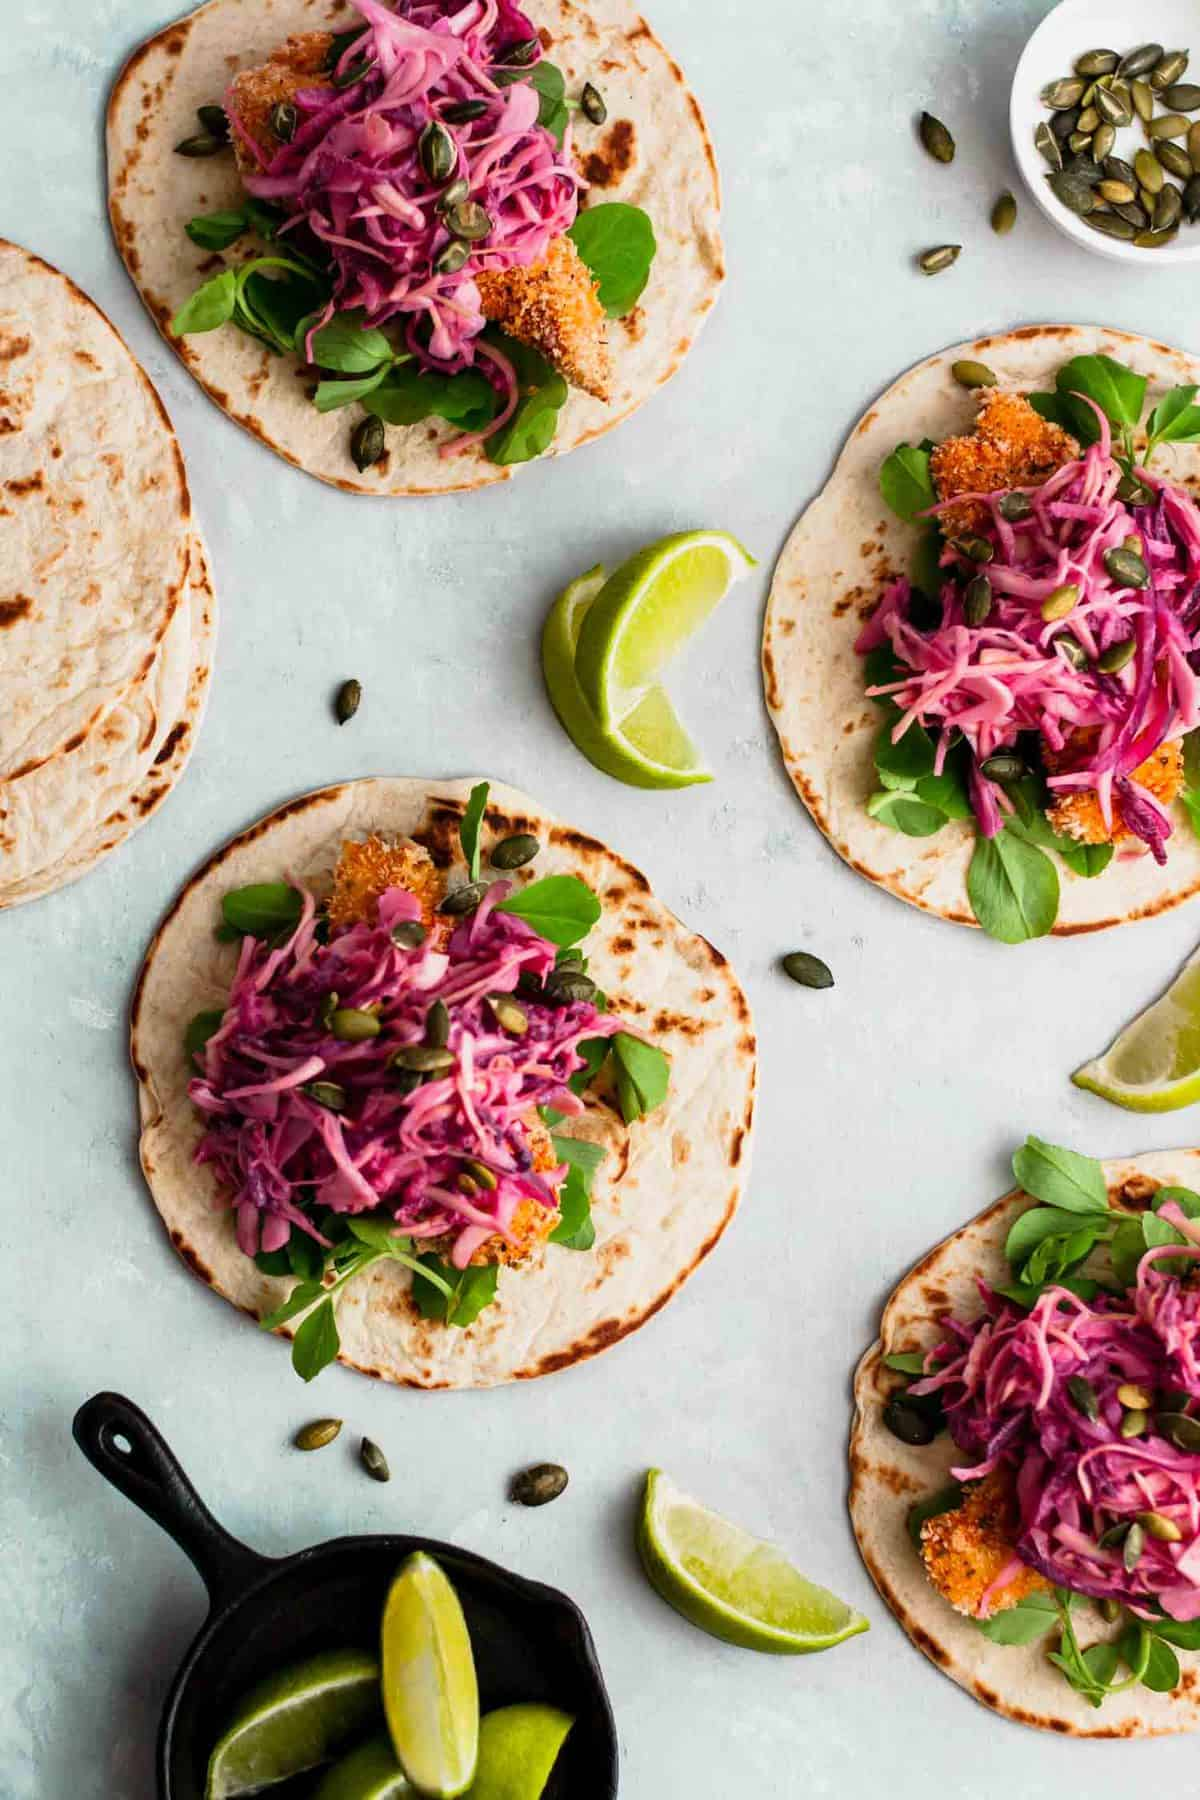 Crispy Chicken Tacos with Beetroot & Apple Slaw